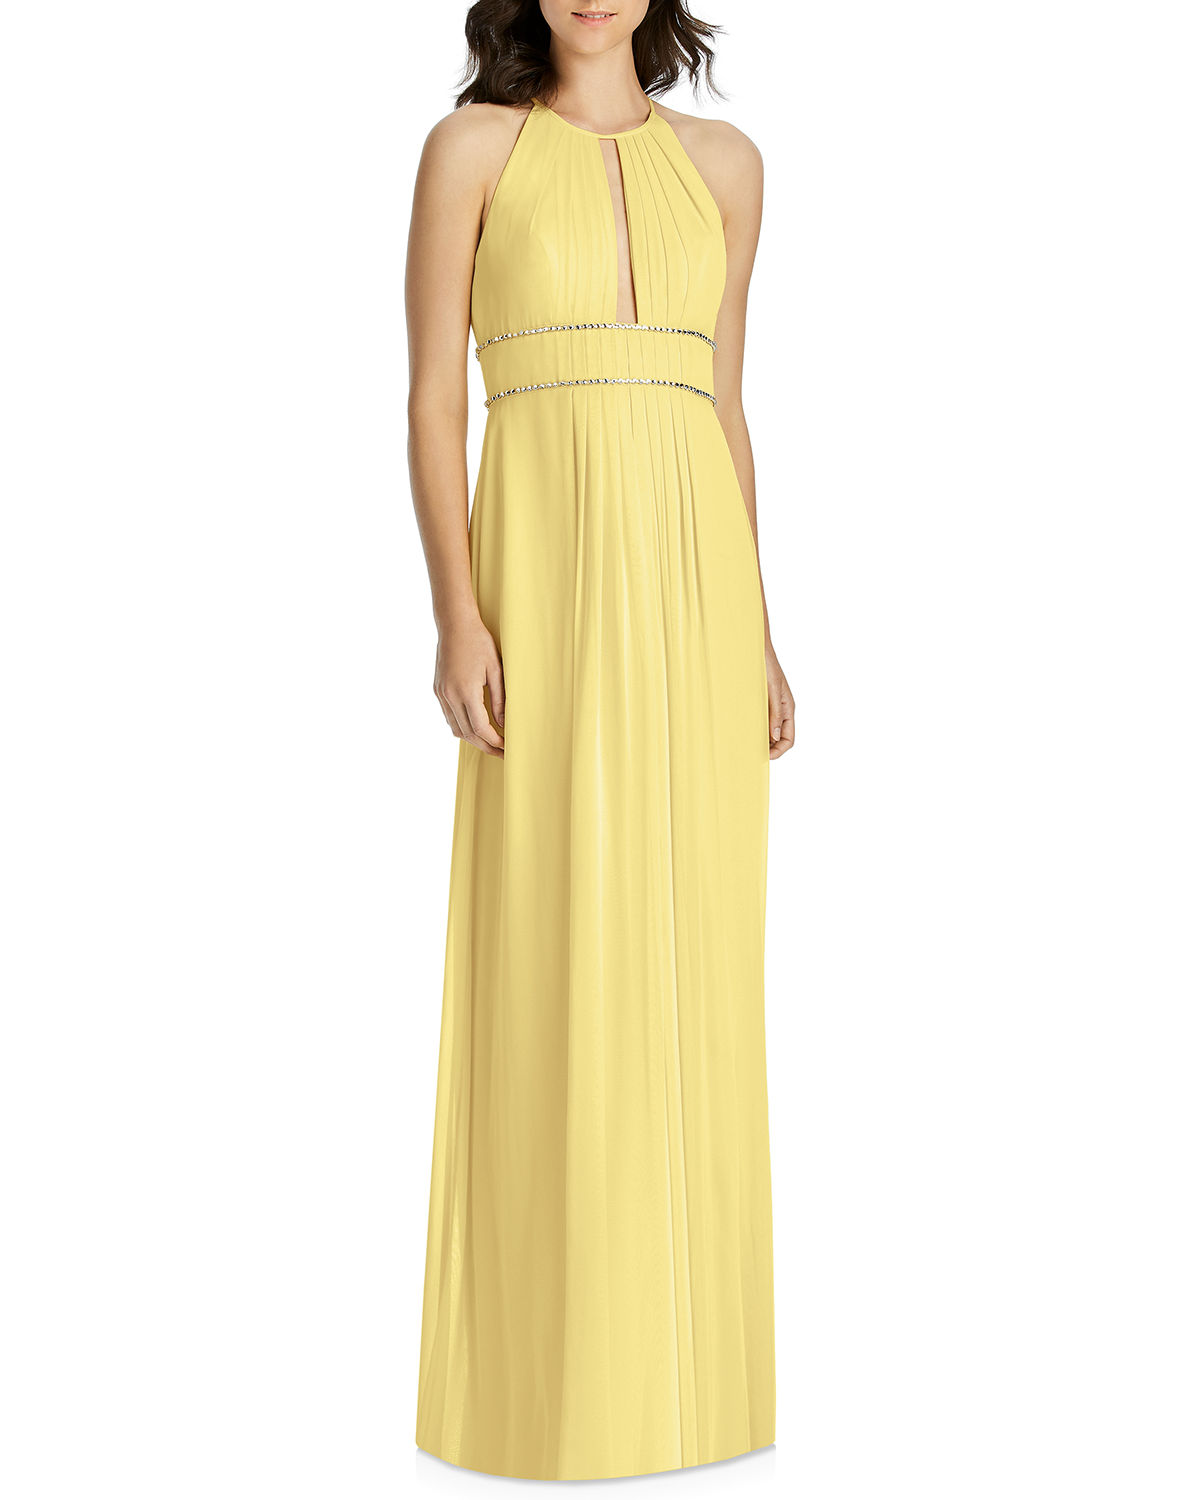 04eb0af8a838 Jenny Packham Lux Chiffon Halter Bridesmaid Gown with Beaded Trim ...